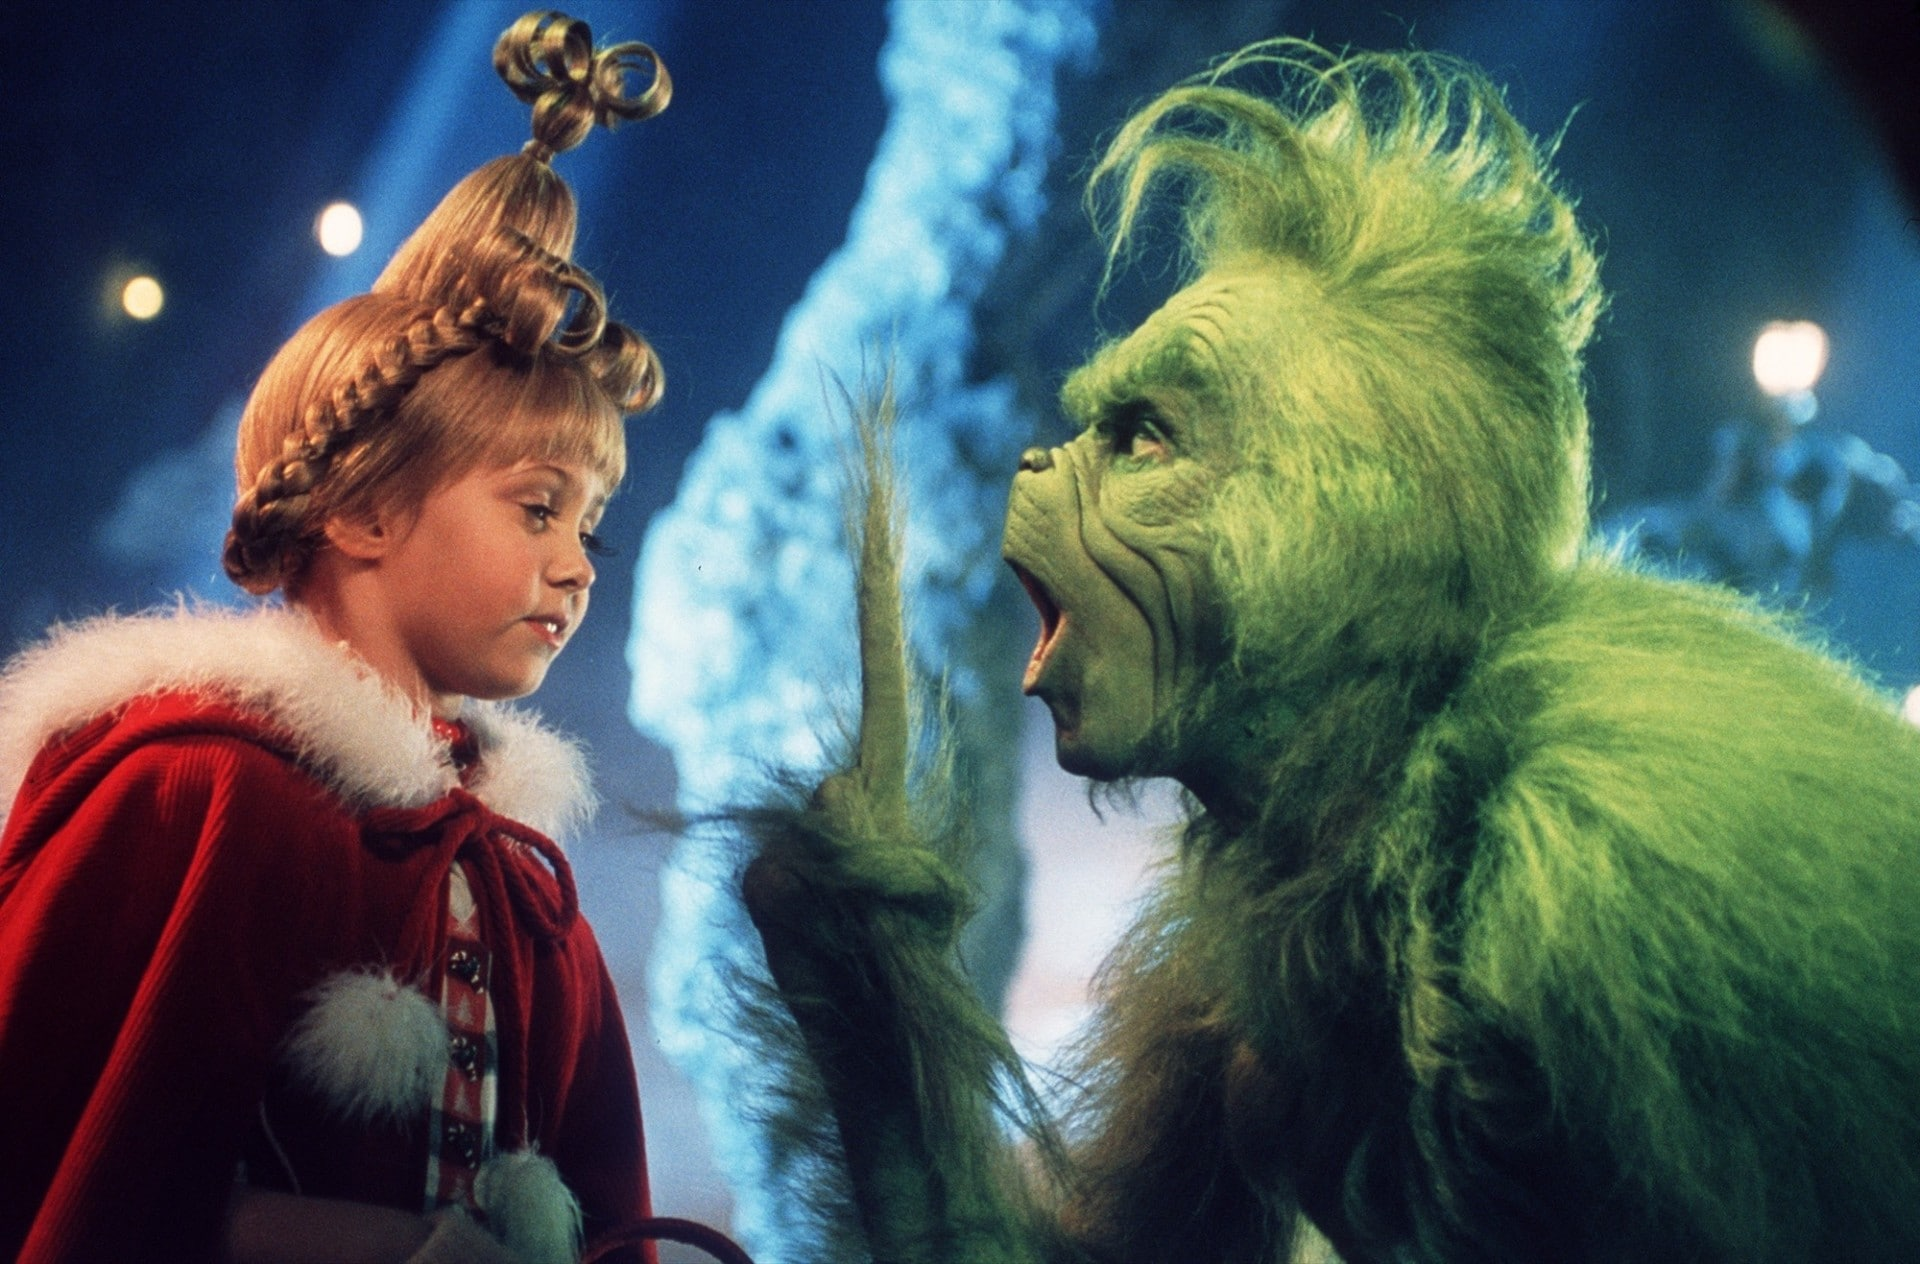 Grinch make-up is definitely not here to ruin our Christmas